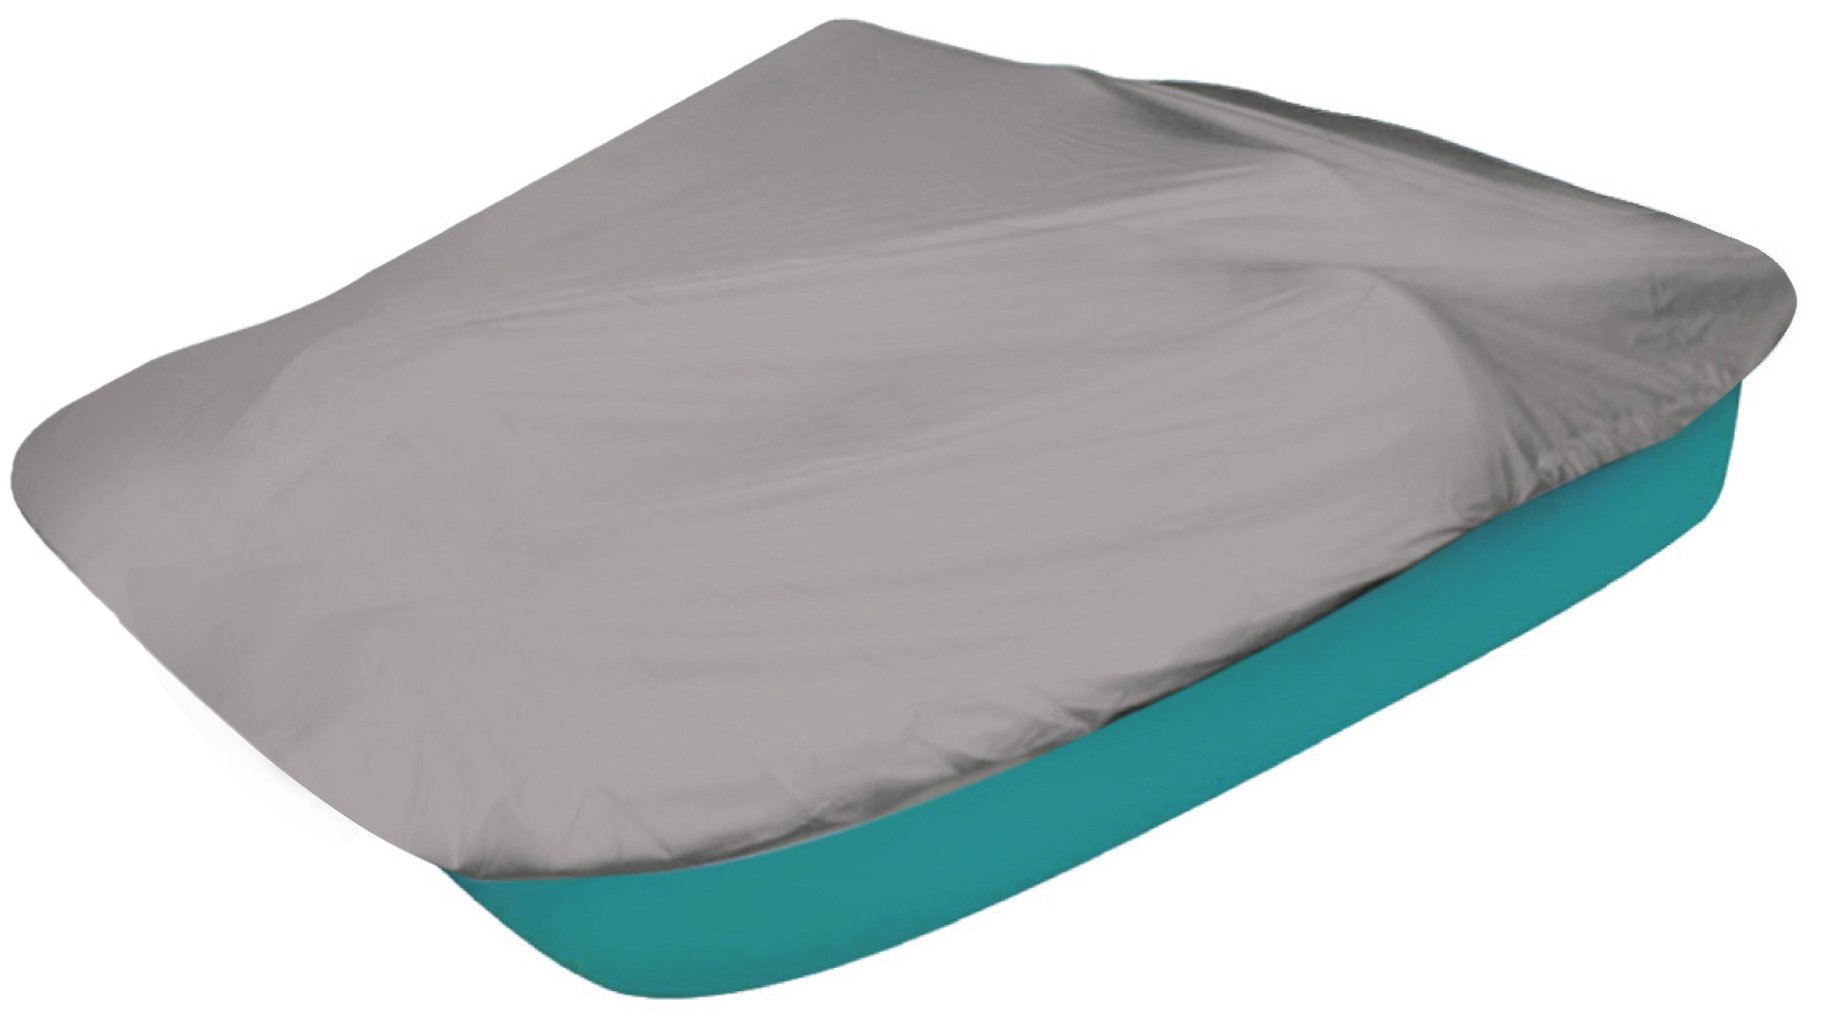 Leader Accessories Polyester Universal Paddle Boat Cover(ShoreGuard Grey) by Leader Accessories